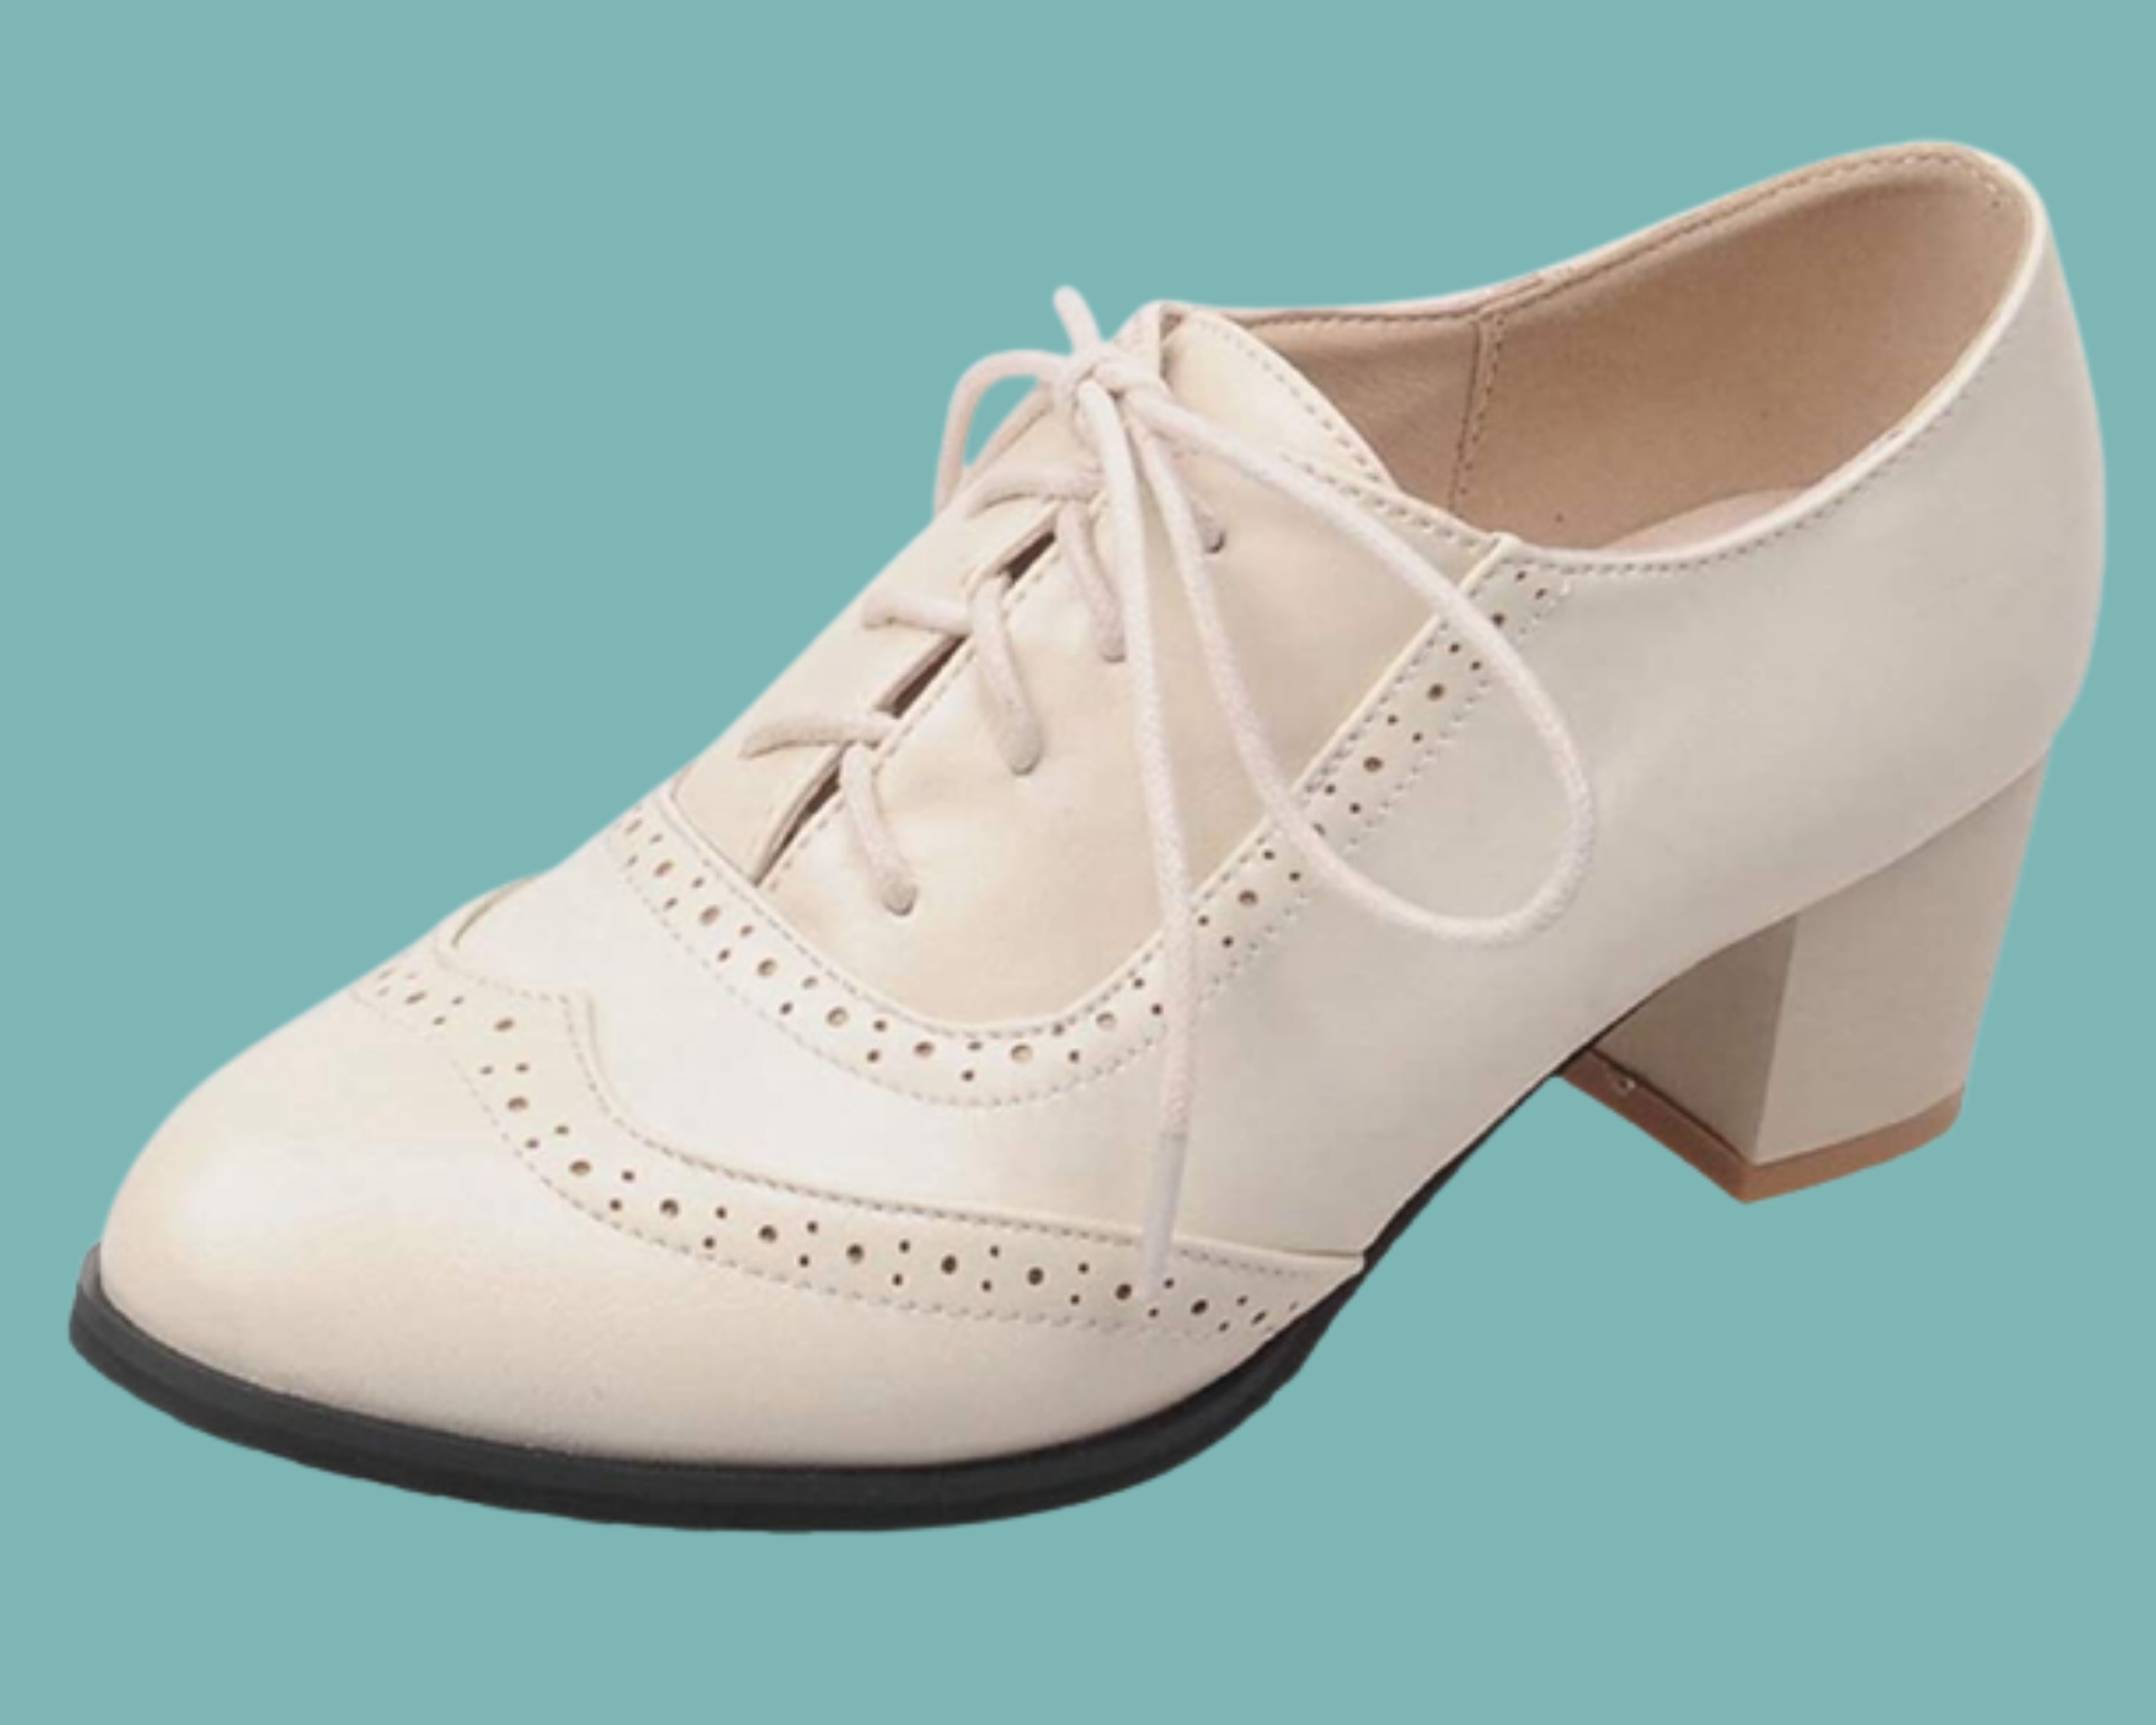 Best female Oxford shoes